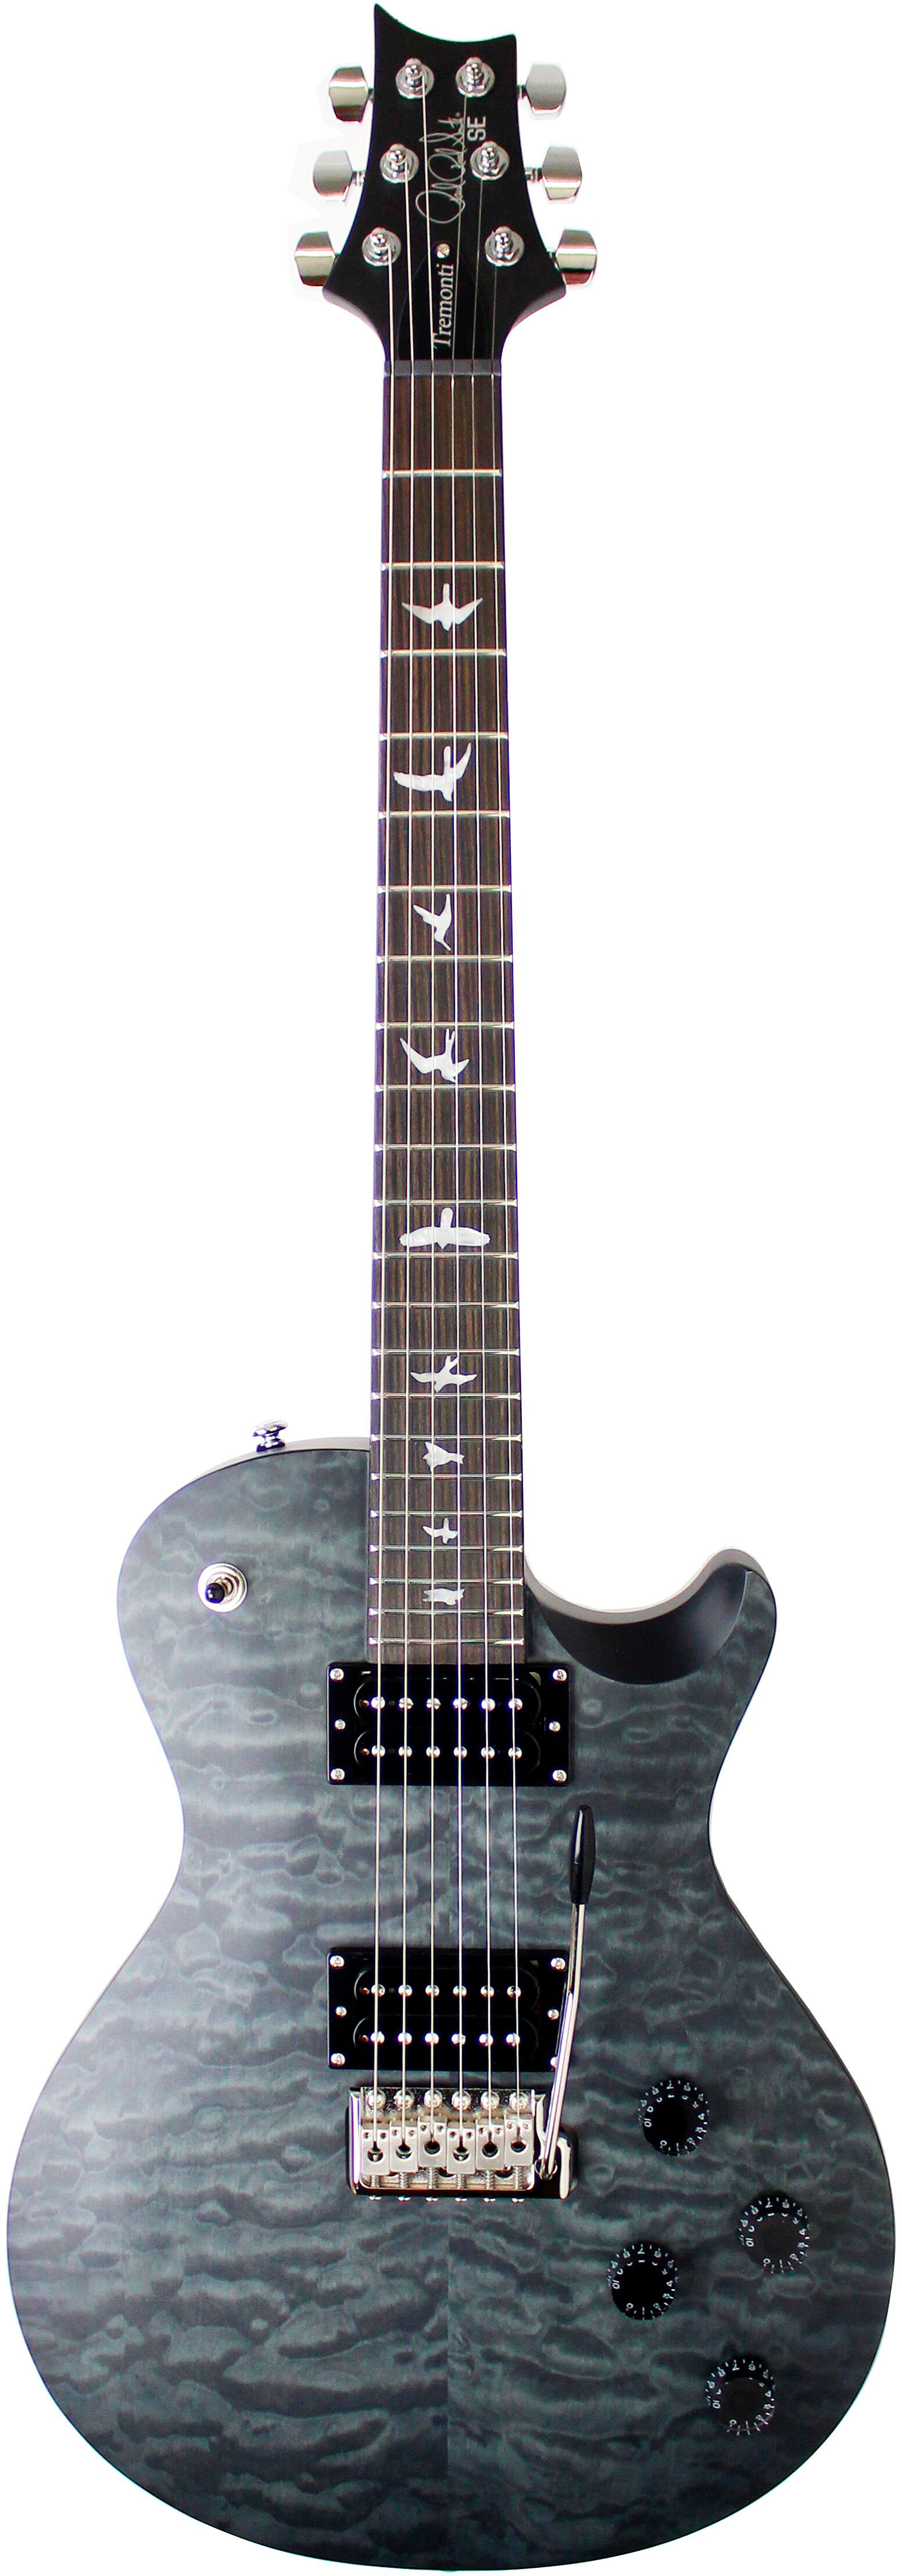 Prs guitars SE MARK TREMONTI SATIN QUILT STEALTH GREY BLACK